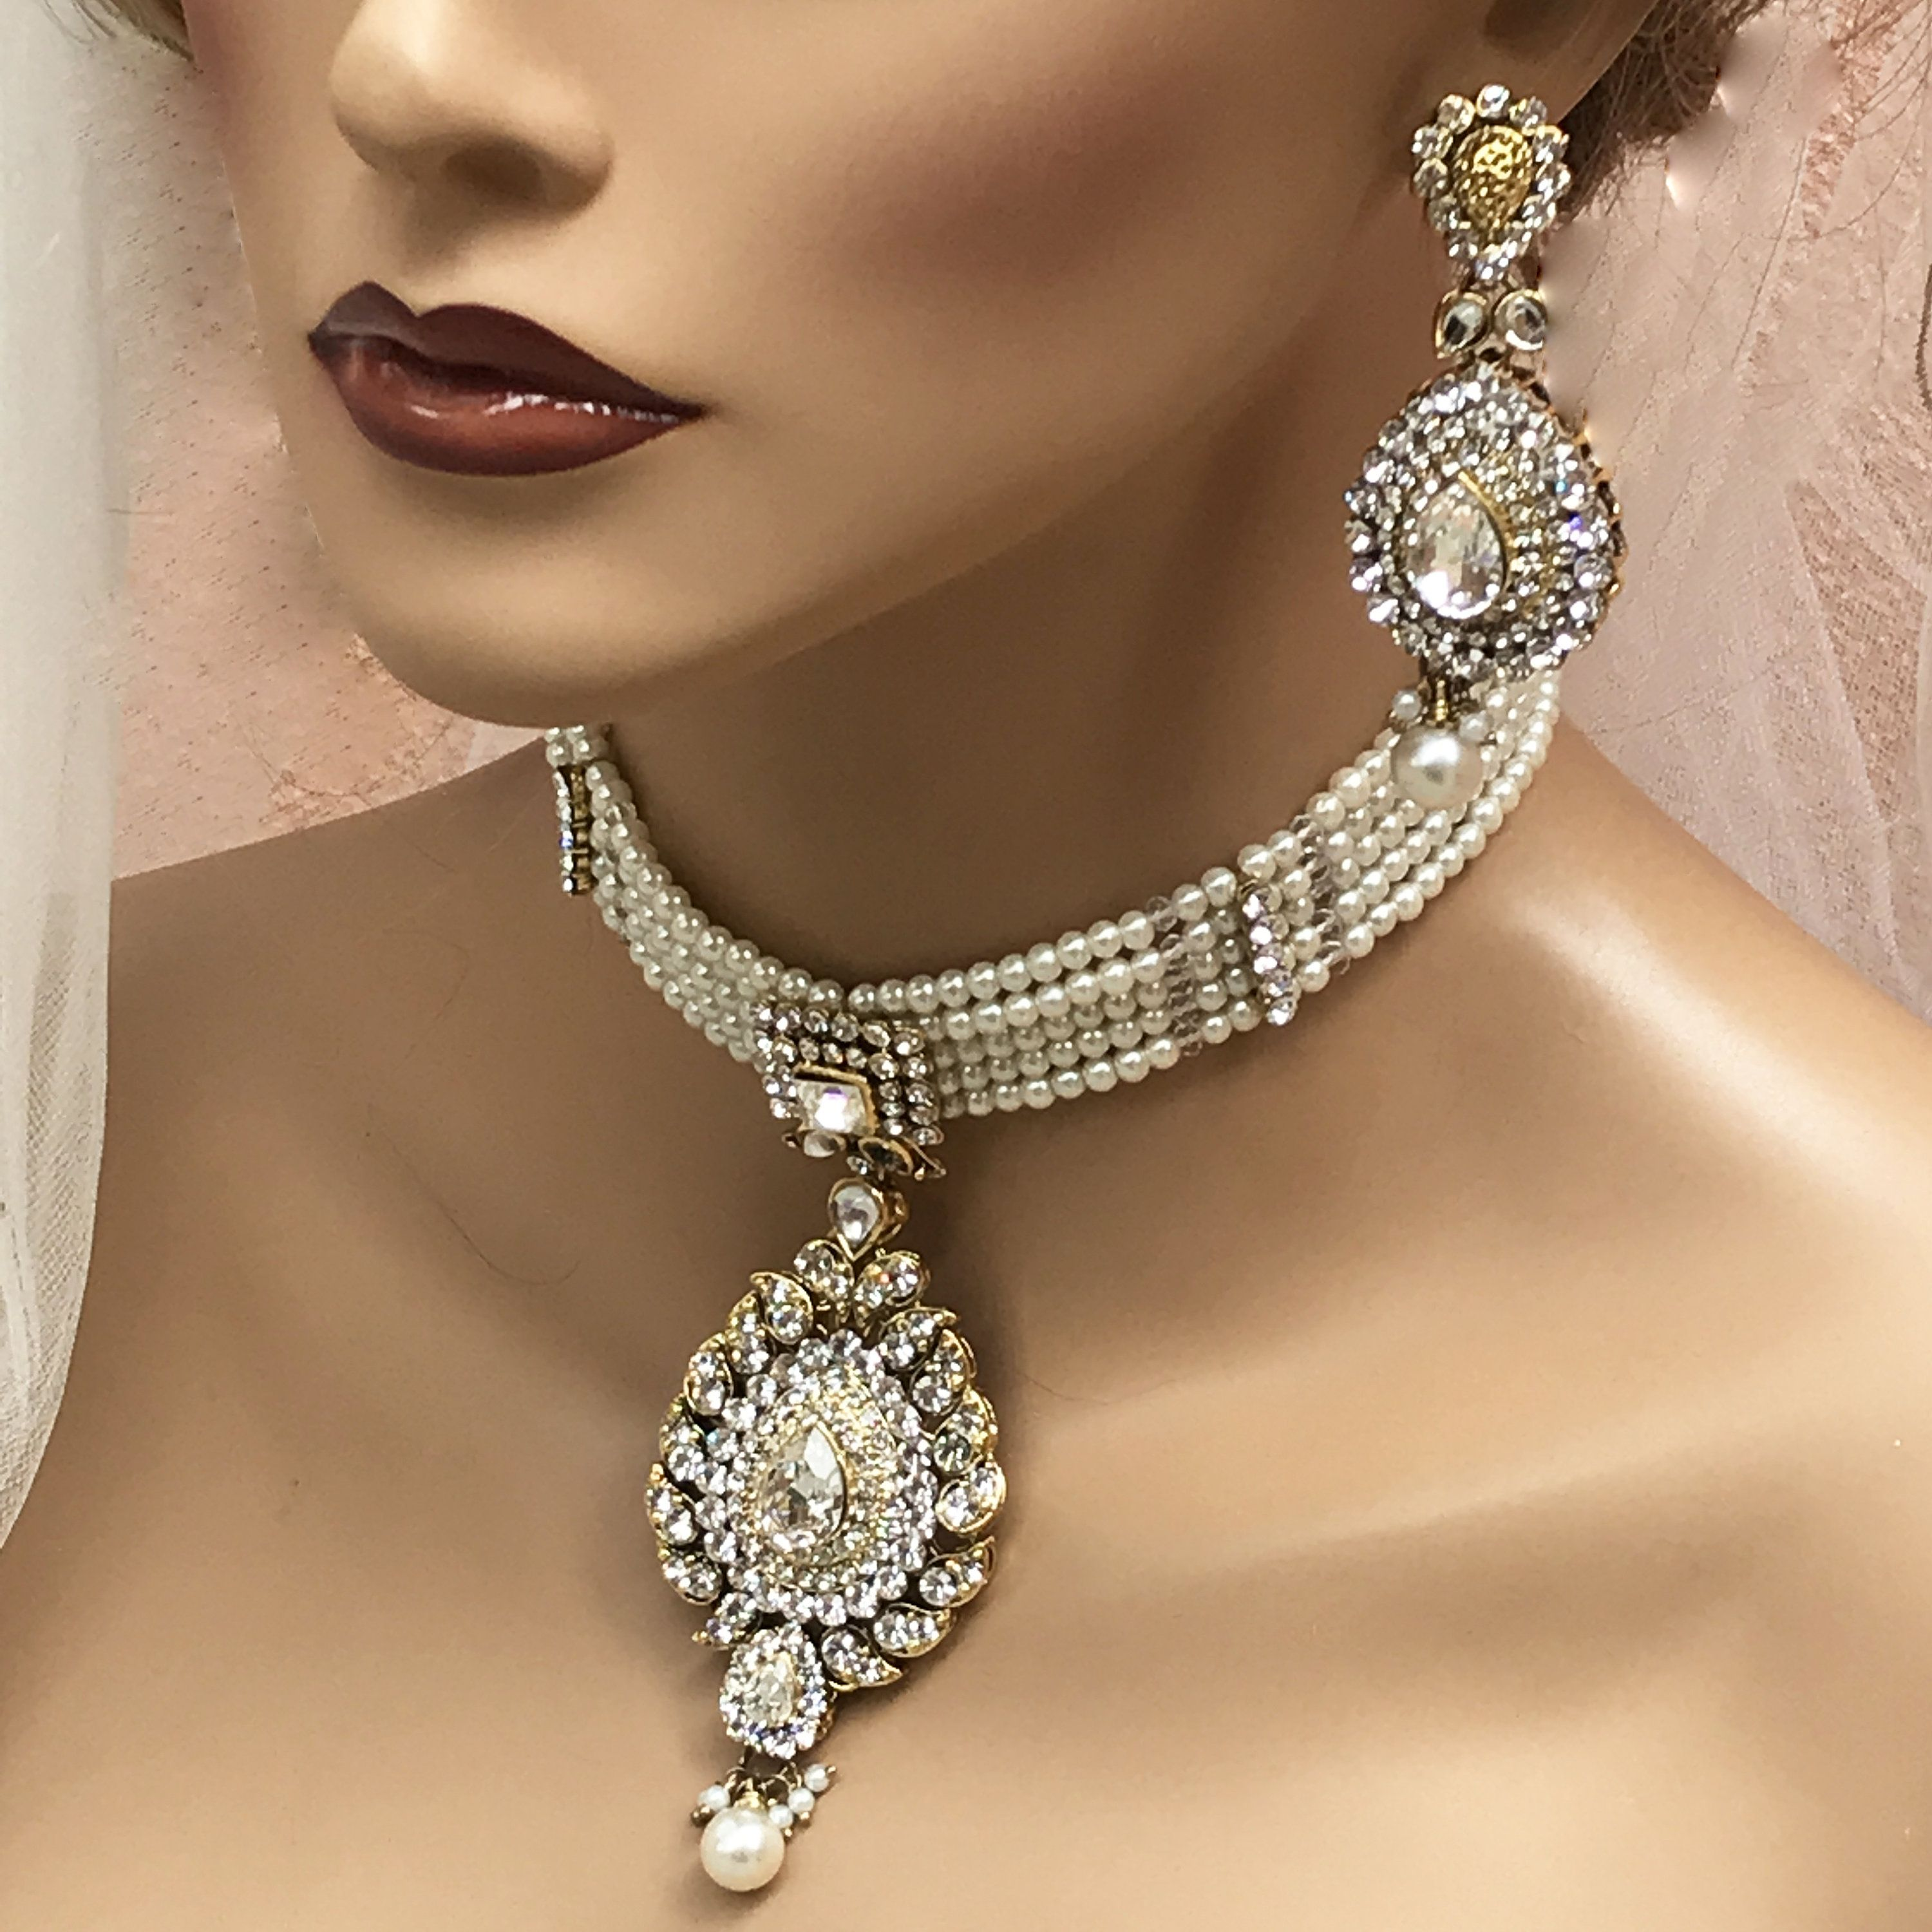 earrings gold plated lilies wedding evening bridal pearls CAlla Jewelry set wedding bridal necklace bracelet